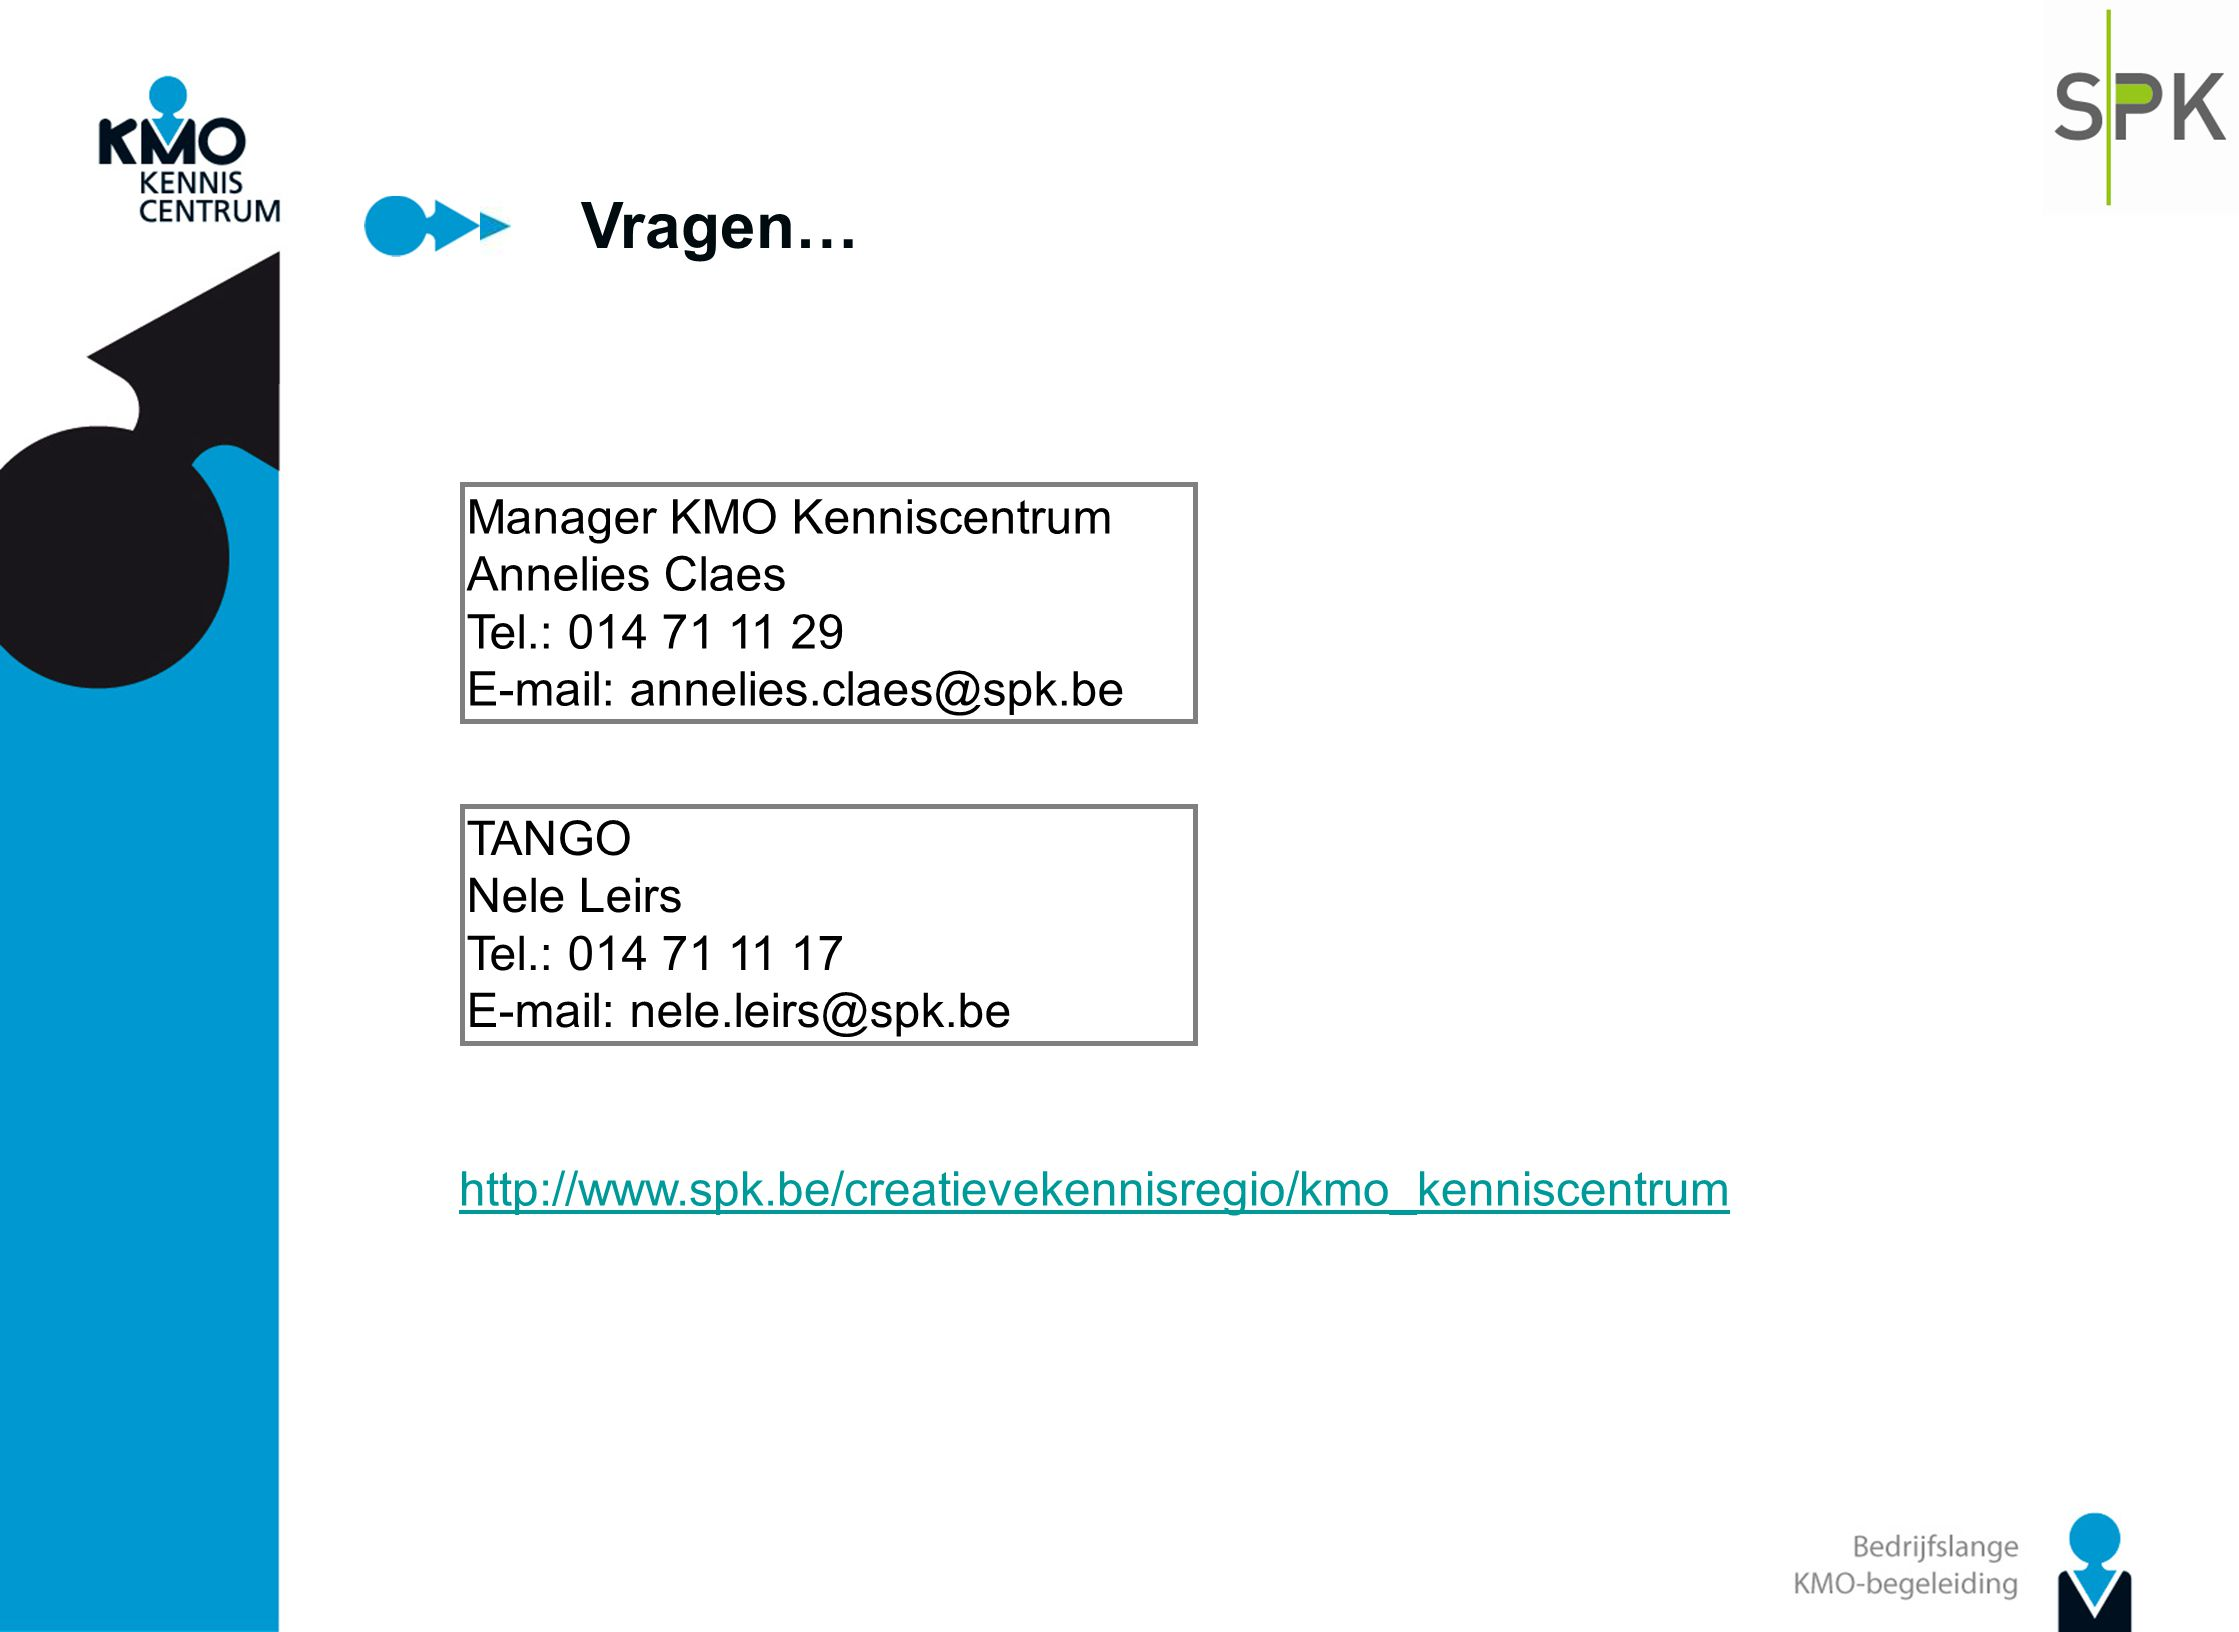 Vragen… Manager KMO Kenniscentrum Annelies Claes Tel.: 014 71 11 29